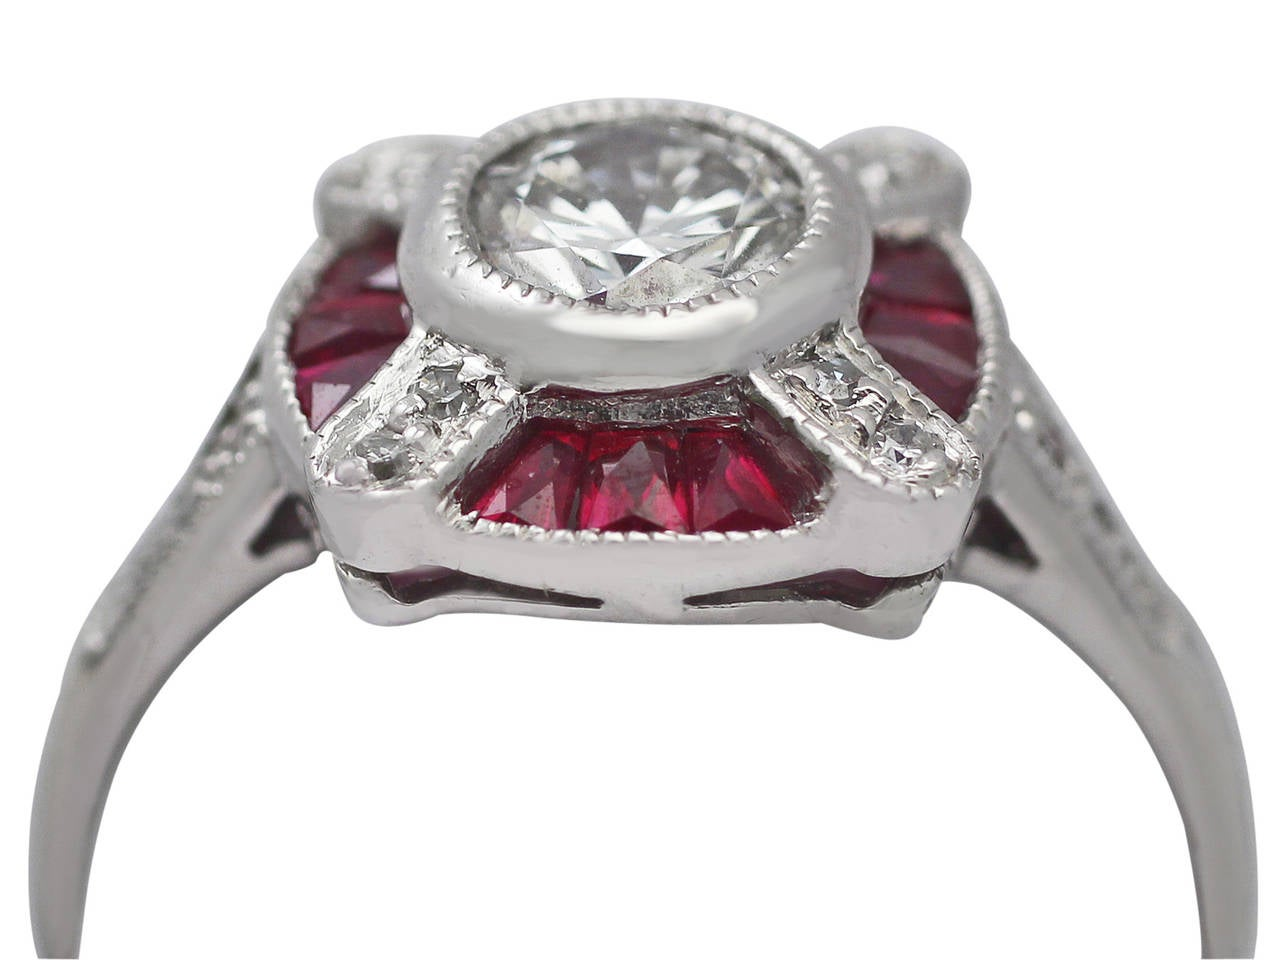 A stunning, fine and impressive vintage 0.75 carat diamond and 0.34 carat natural ruby, platinum dress ring in the Art Deco style; part of our vintage jewellery and estate jewelry collections  This stunning 1940s ring has been crafted in platinum in